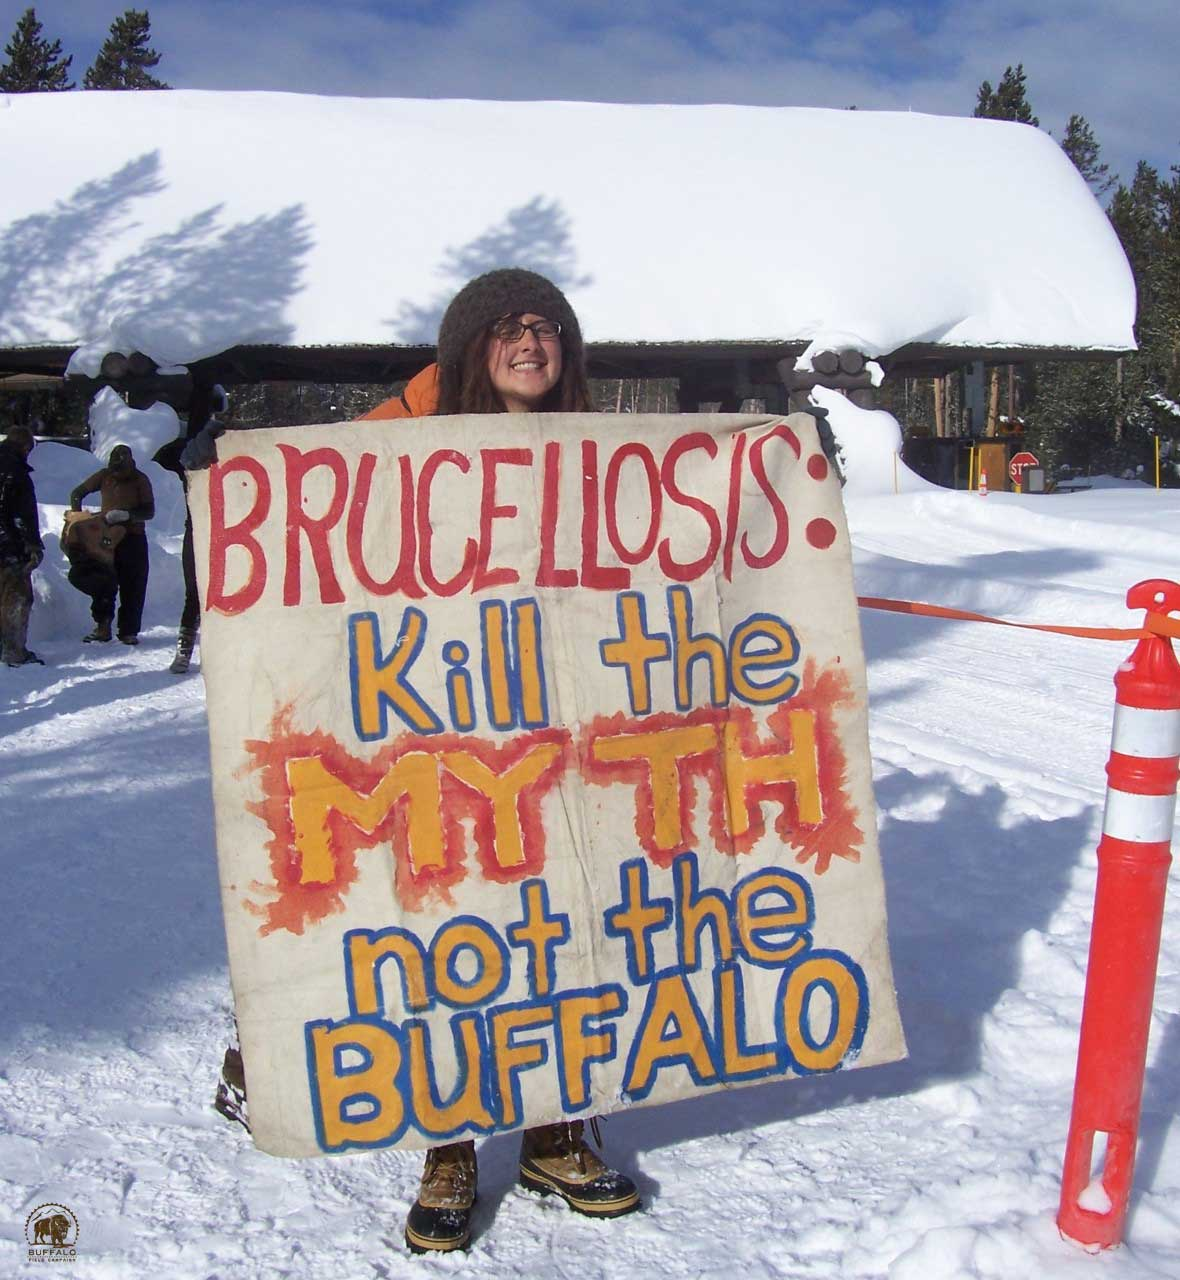 2020 04 23 02 001 Brucellosis Action BFC photo